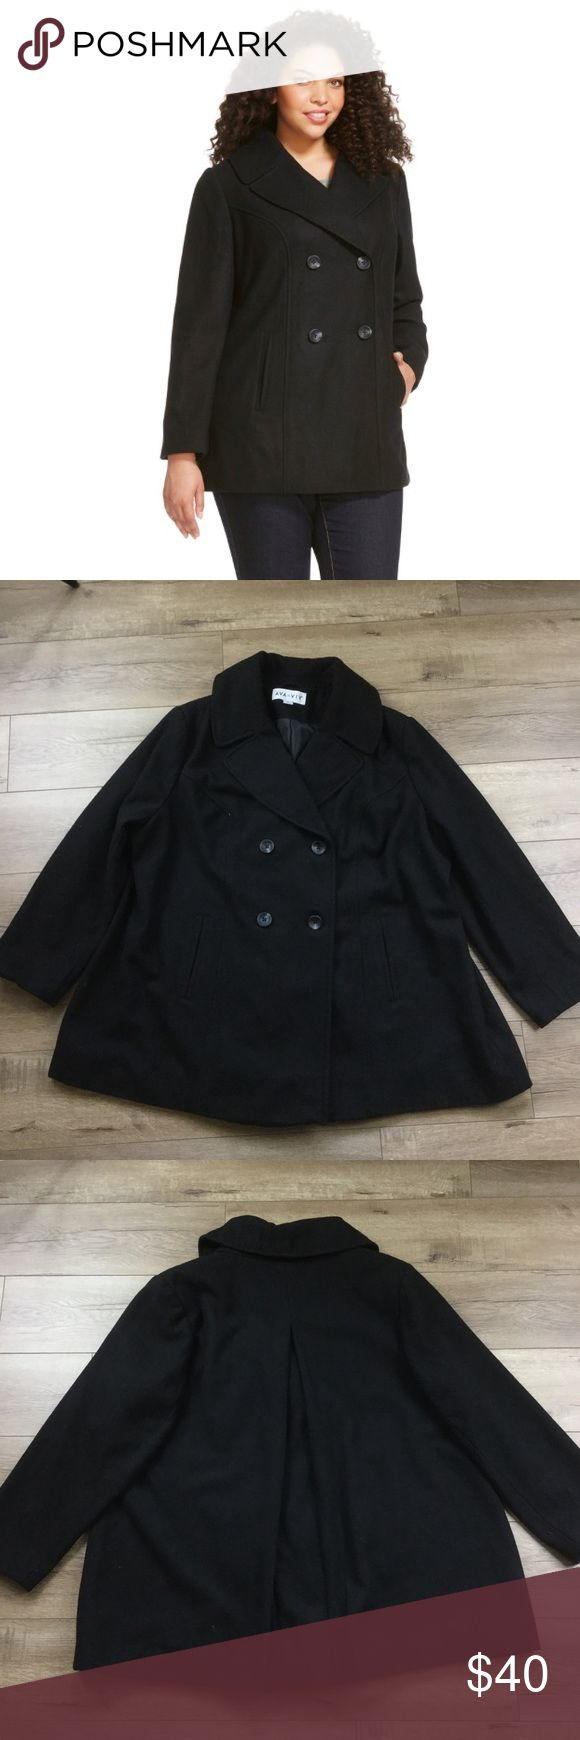 "Ava & Viv Black pea coat wool button up jacket Brand: Ava & Viv  Black button up pea coat. Thick material to keep you warm in the winter but also stylish  Size: 3X Approx measurements included in photos to ensure proper fit.  Material: Wool blend & polyester liner  Condition: Very Good, preloved  Flaws: None Known  Check out @teashopkids for all children's items!  Open to offers or click ""Add to Bundle"" for liked item(s) to receive a special Just For You discount OR save $$ instantly when…"